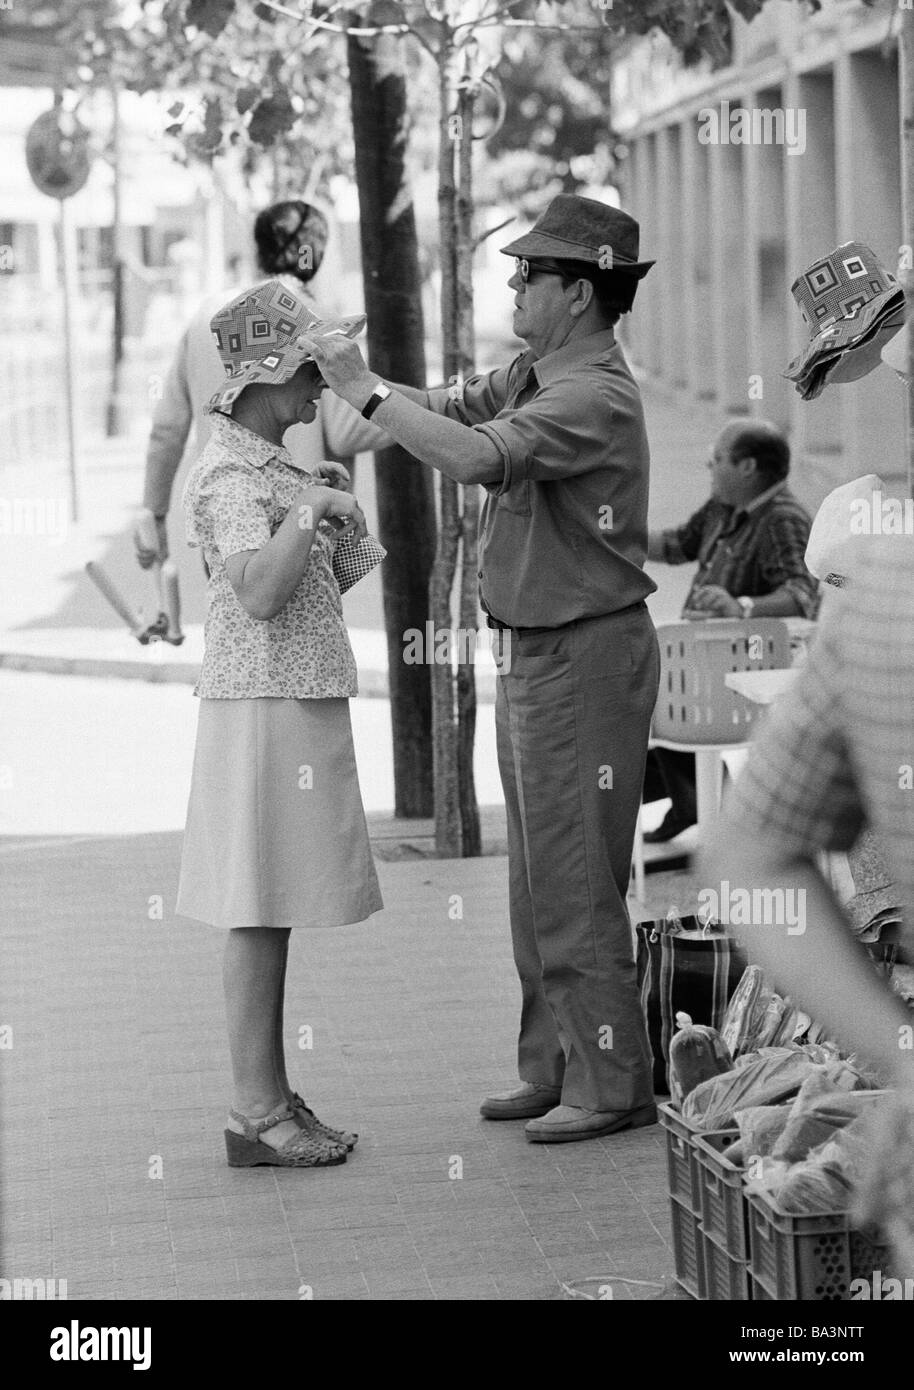 Seventies, black and white photo, holidays, tourism, souvenir shop, older couple, trying on of a hat, man puts on - Stock Image